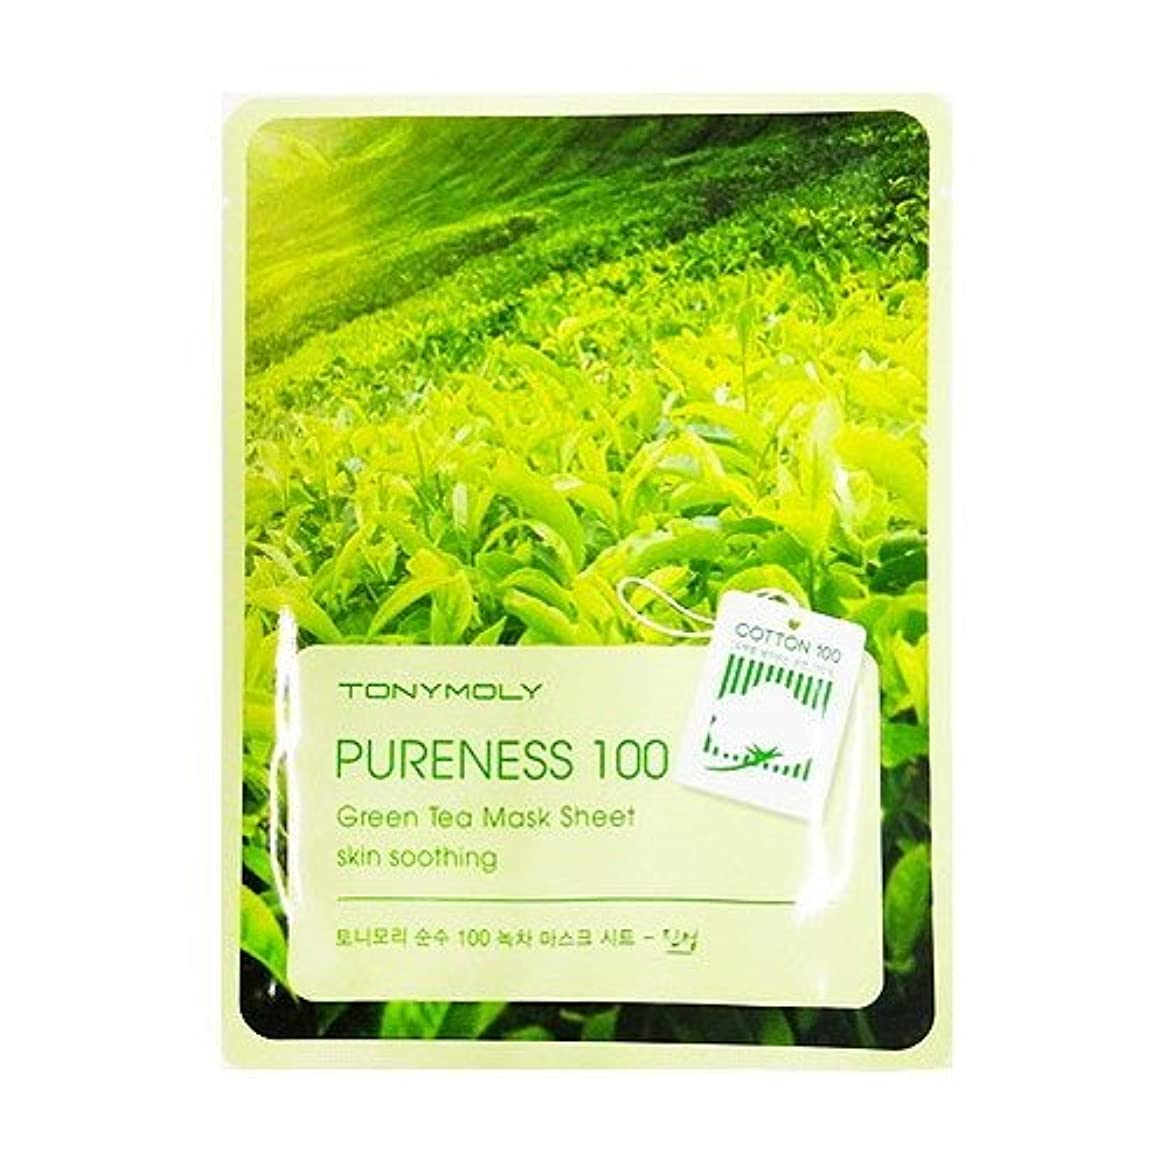 (6 Pack) TONYMOLY Pureness 100 Green Tea Mask Sheet Skin Soothing (並行輸入品)